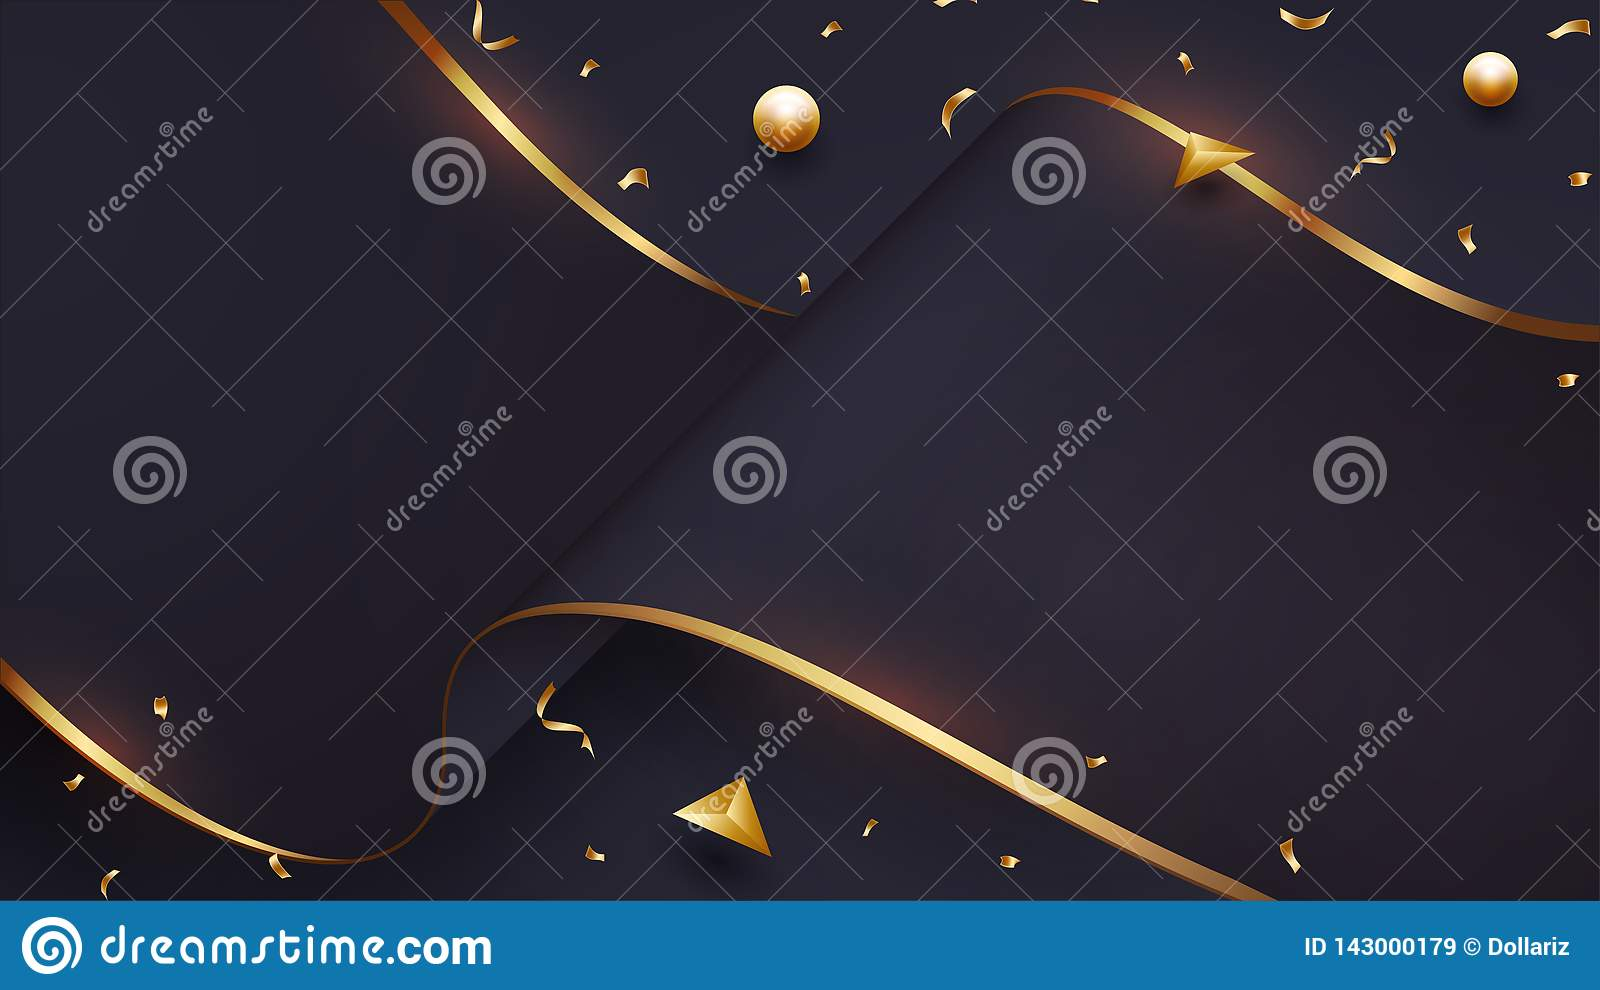 Luxurious wave paper background with a blend of black and gold. Eps10 vector illustration